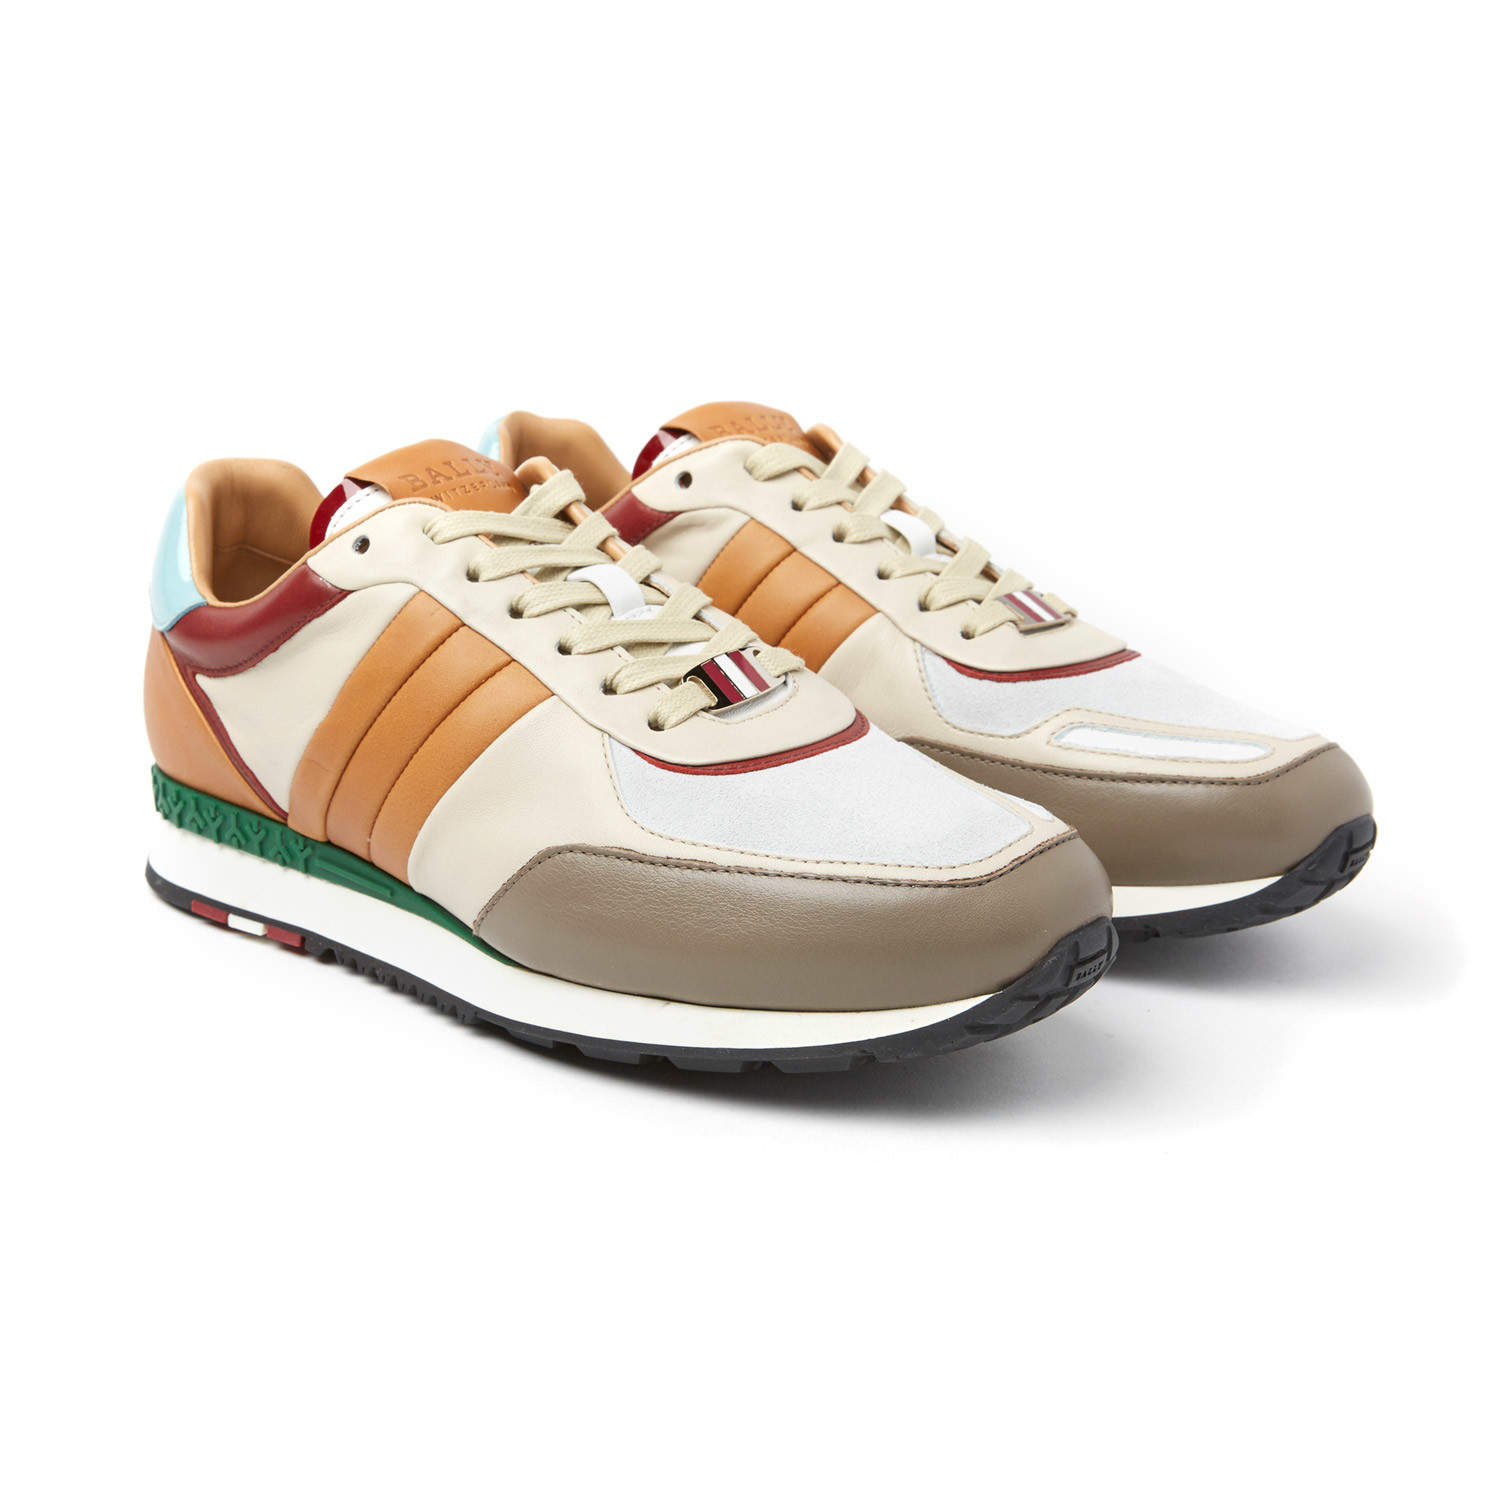 Ascar // Nude (US: 6) - BALLY - Touch of Modern